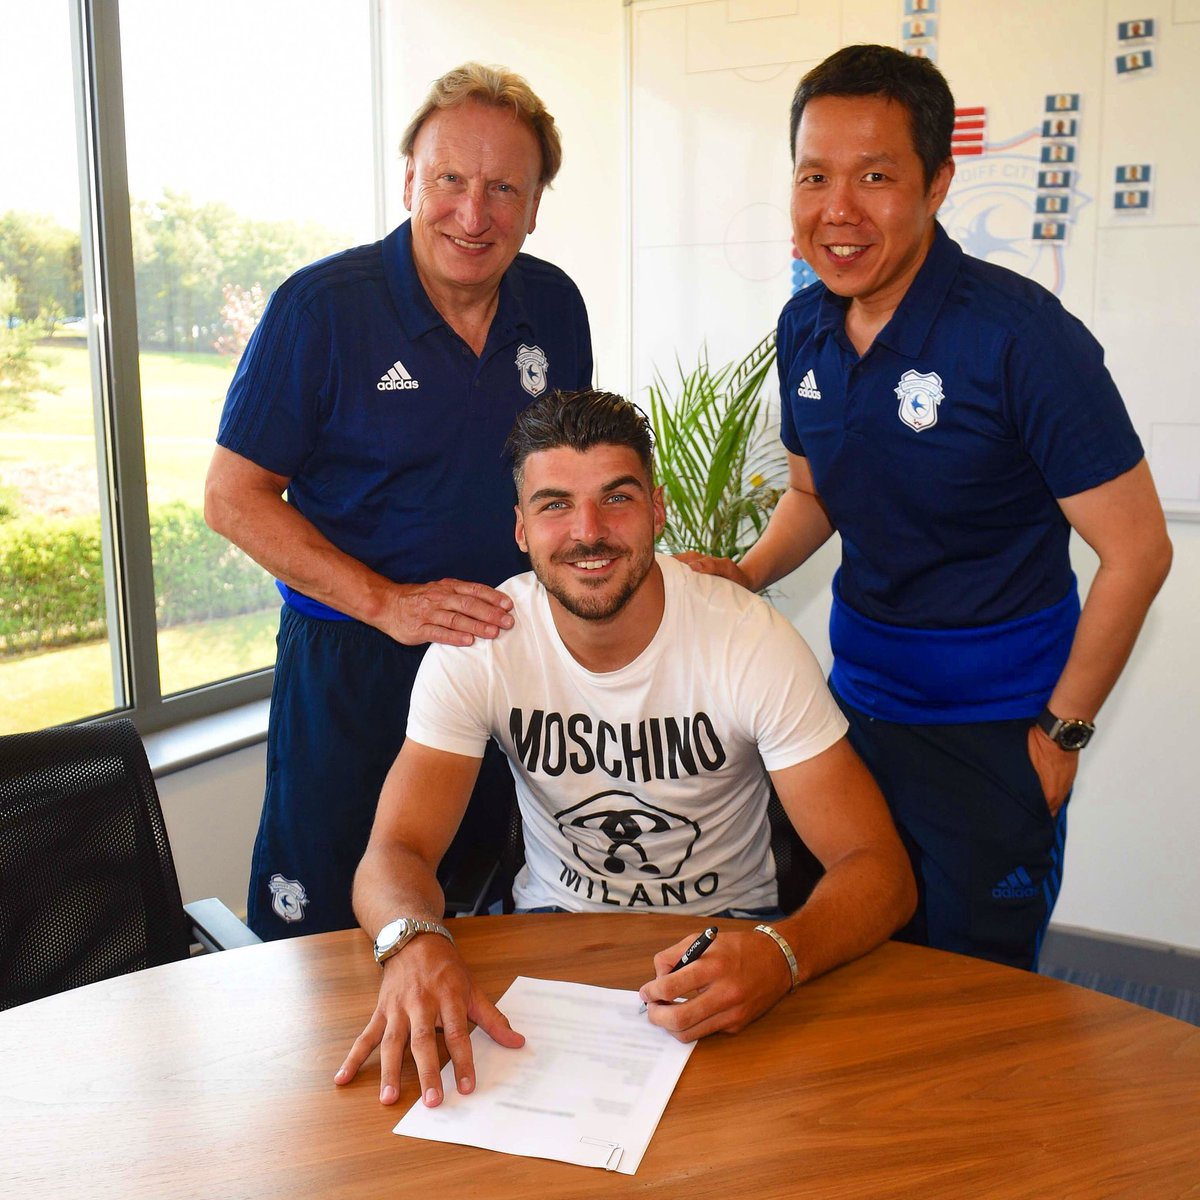 Absolutely delighted to sign a new 4 year contract at @CardiffCityFC can't wait for this season to get started and looking forward to the future! ⚽️⚽️